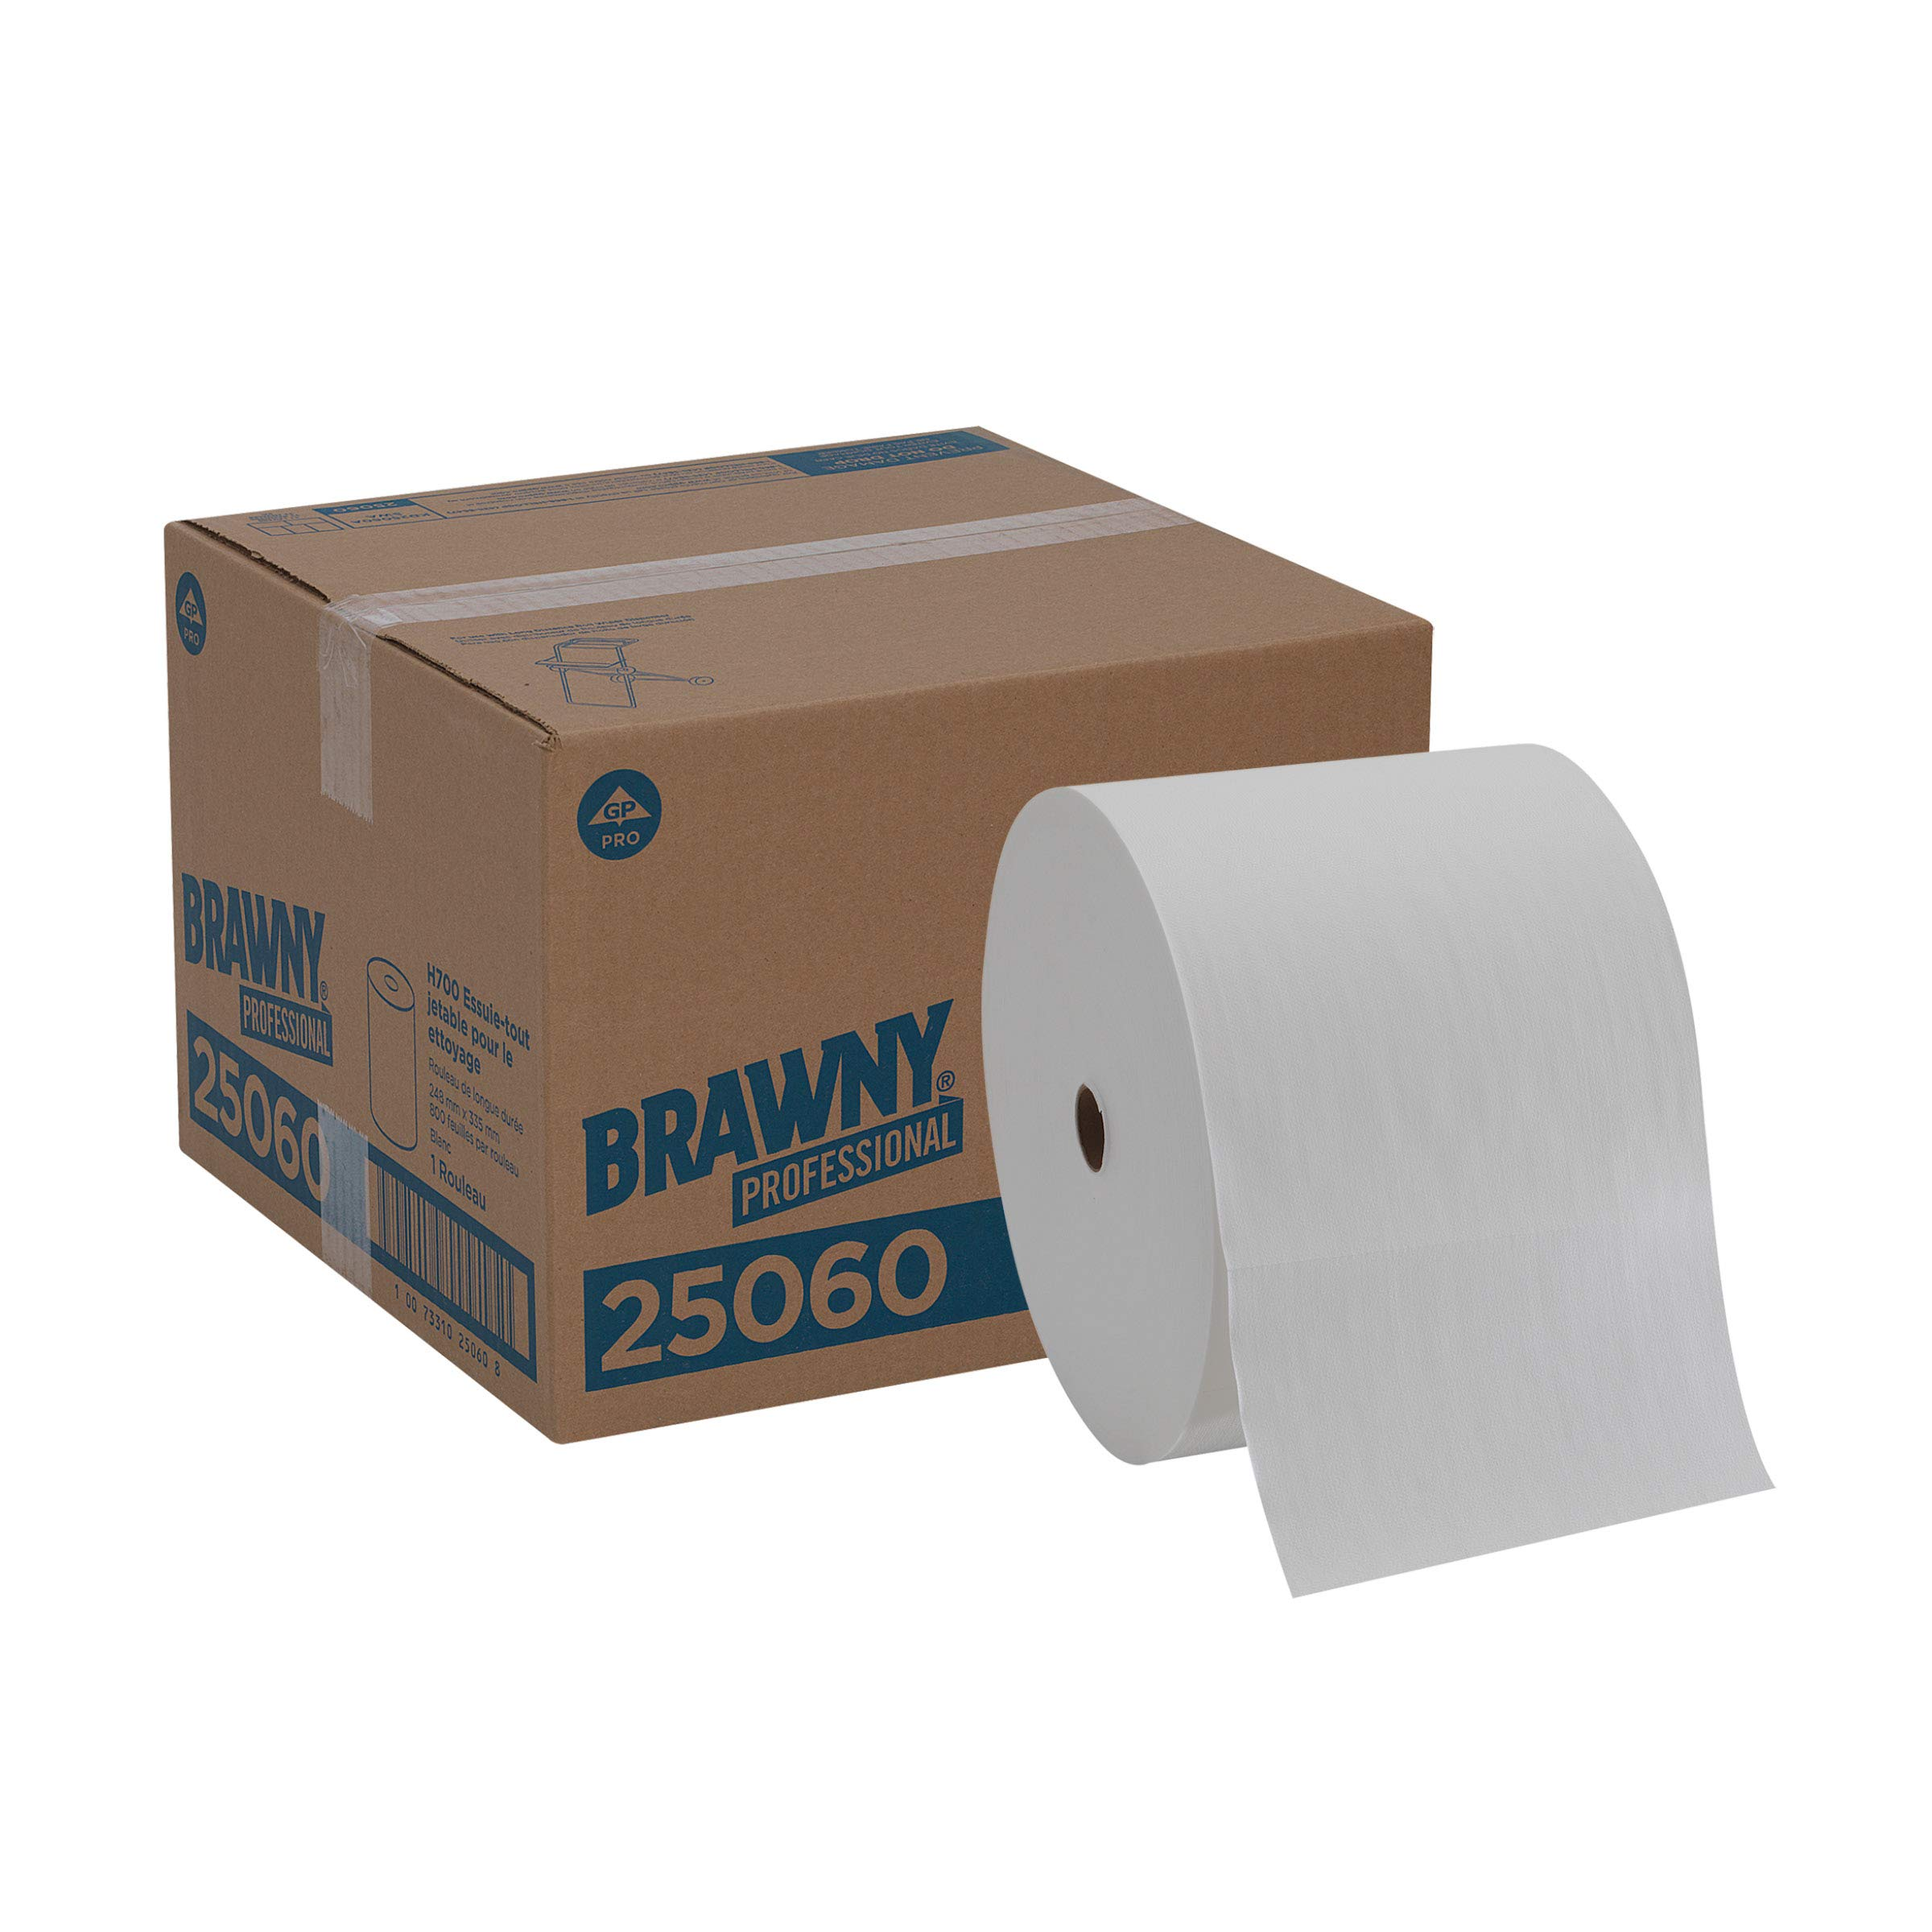 Brawny Professional H700 Disposable Cleaning Towel by GP PRO (Georgia-Pacific), Long Distance Roll, White, 25060, 1 Roll of 800 Cloths